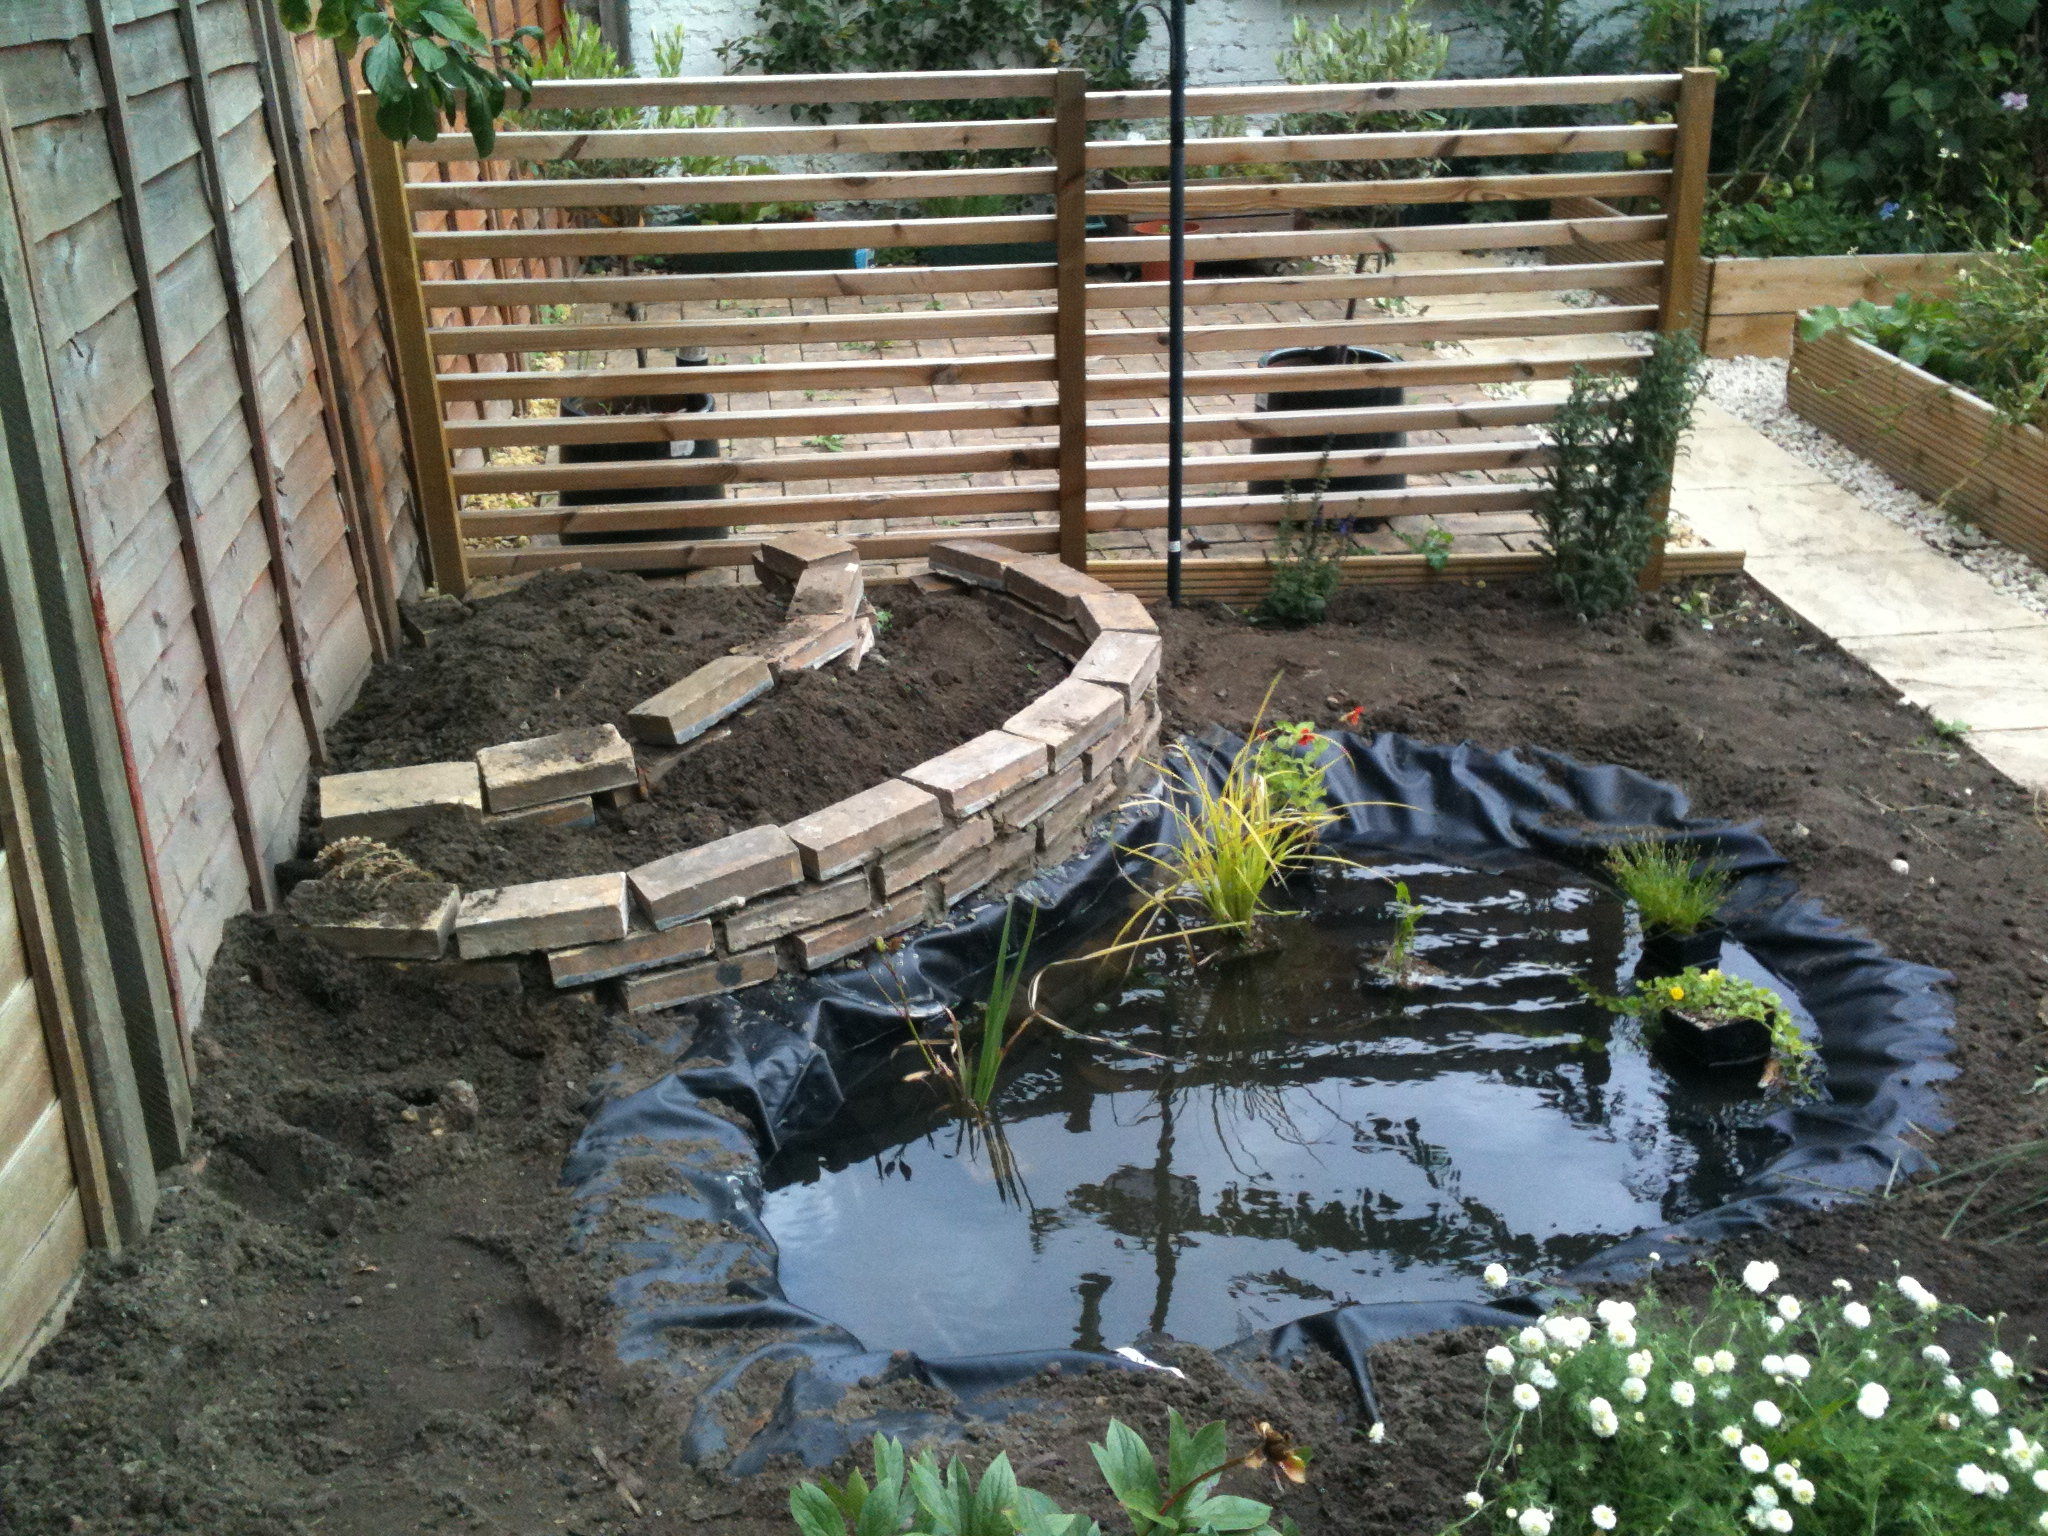 85 Minimalist Fish Pond Design Ideas For 2019 How To Build It